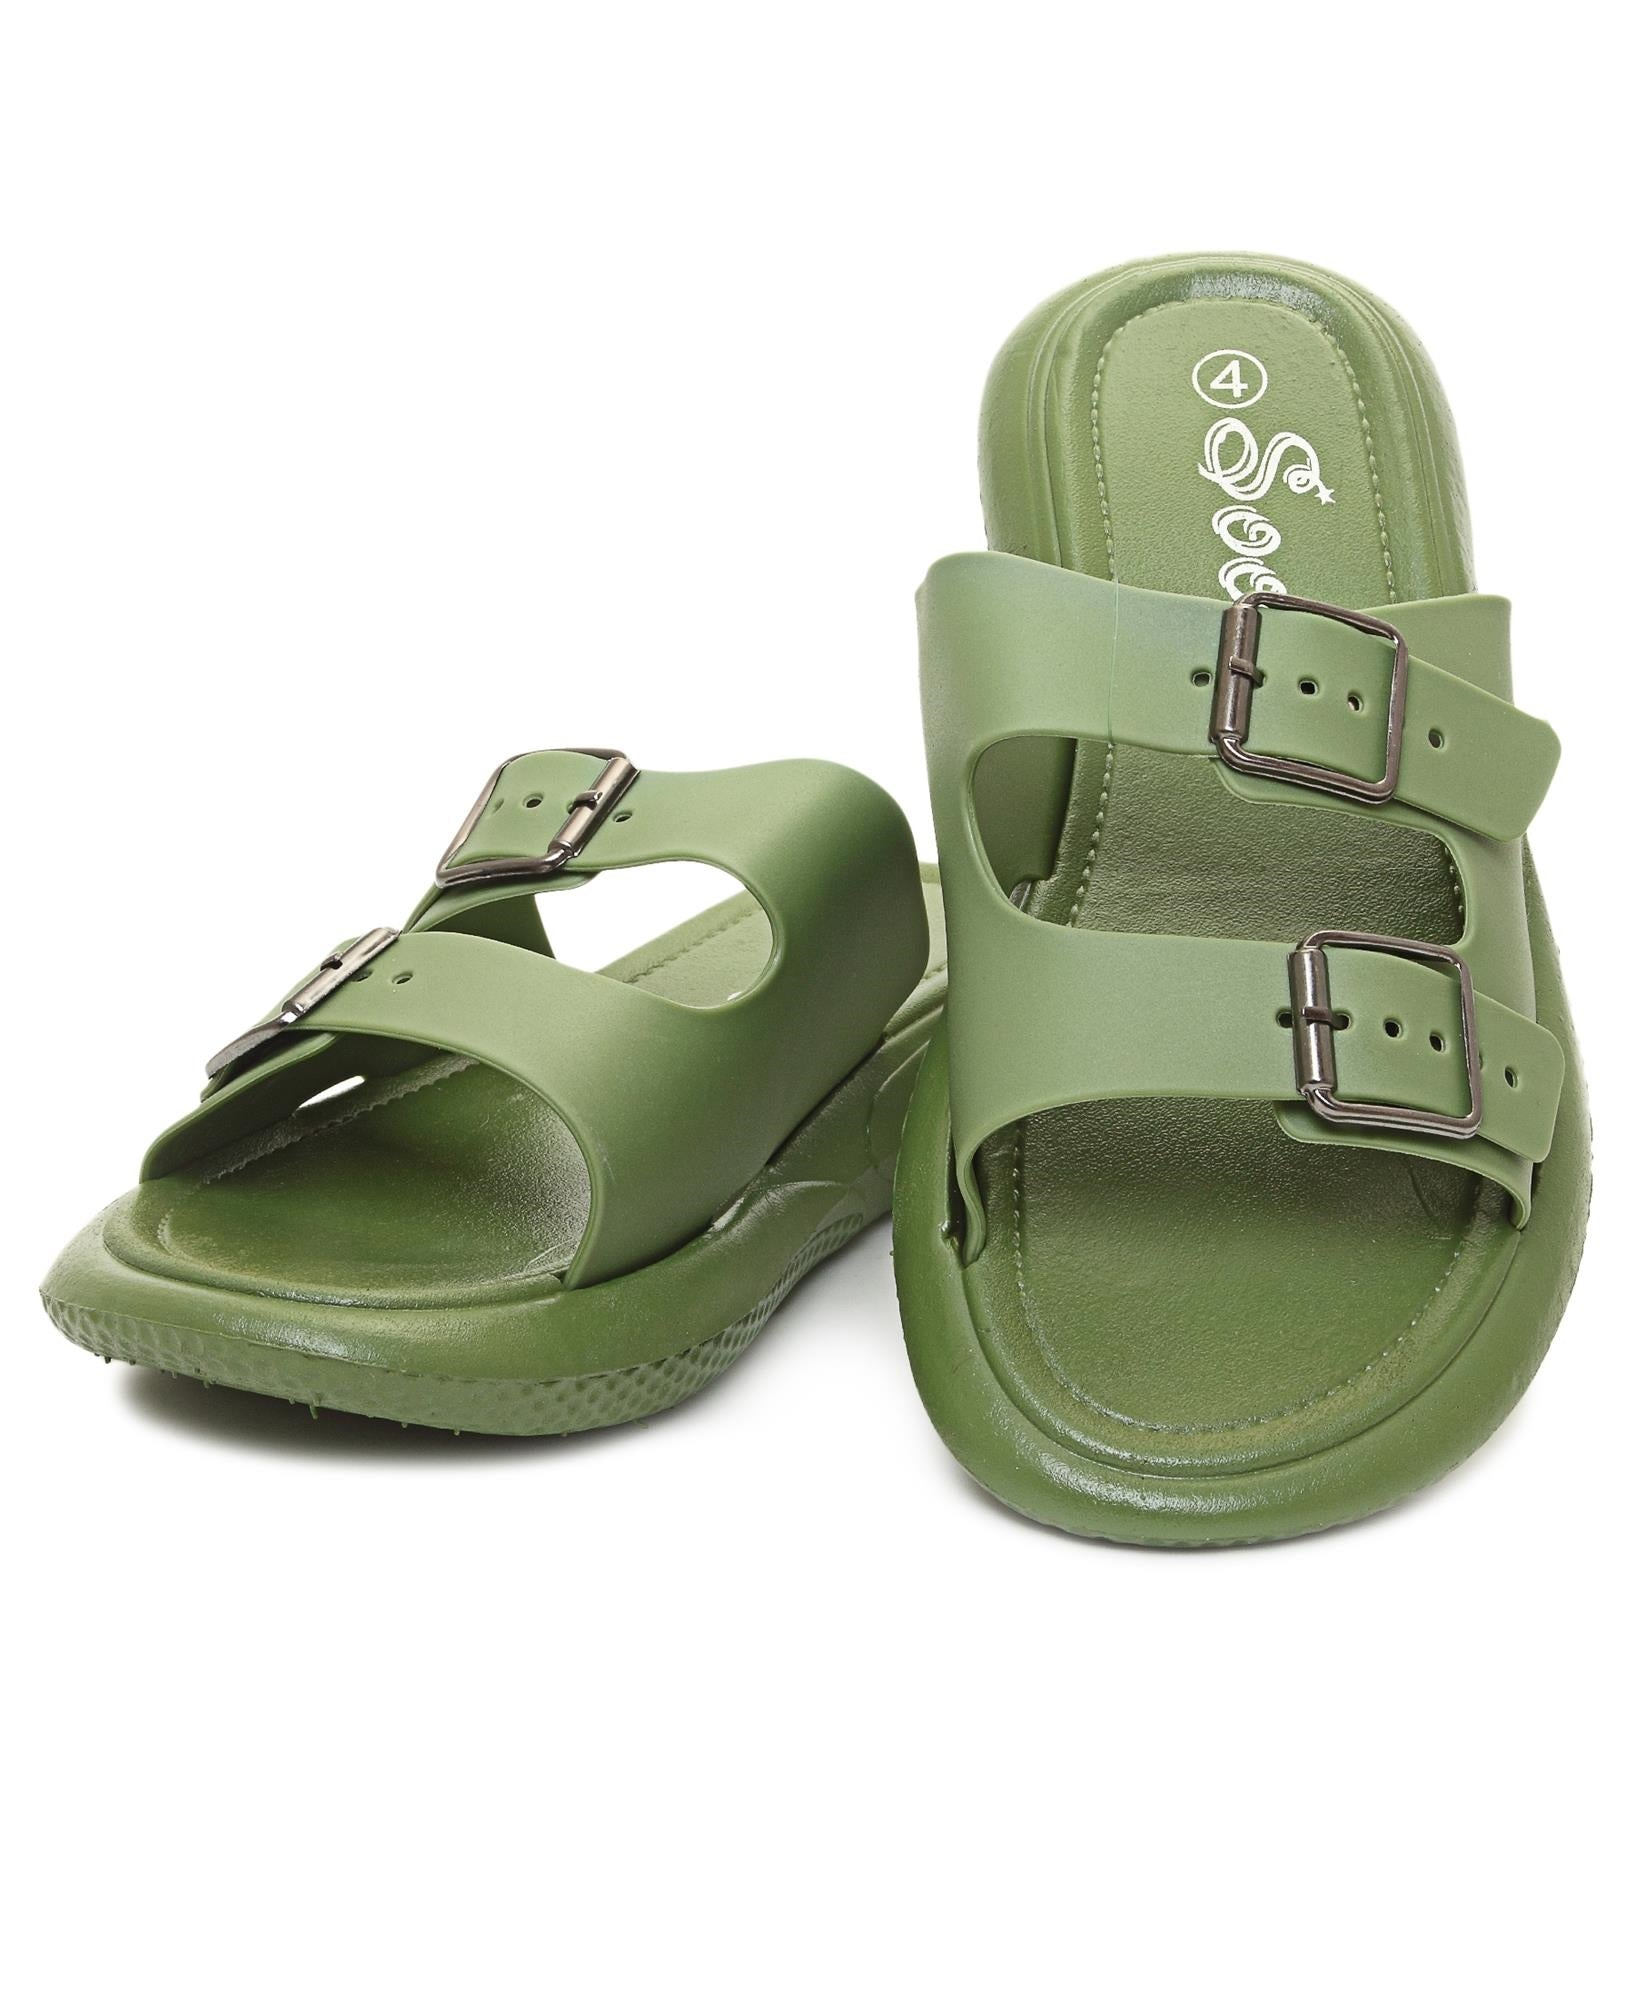 Double Buckle Sandals - Olive